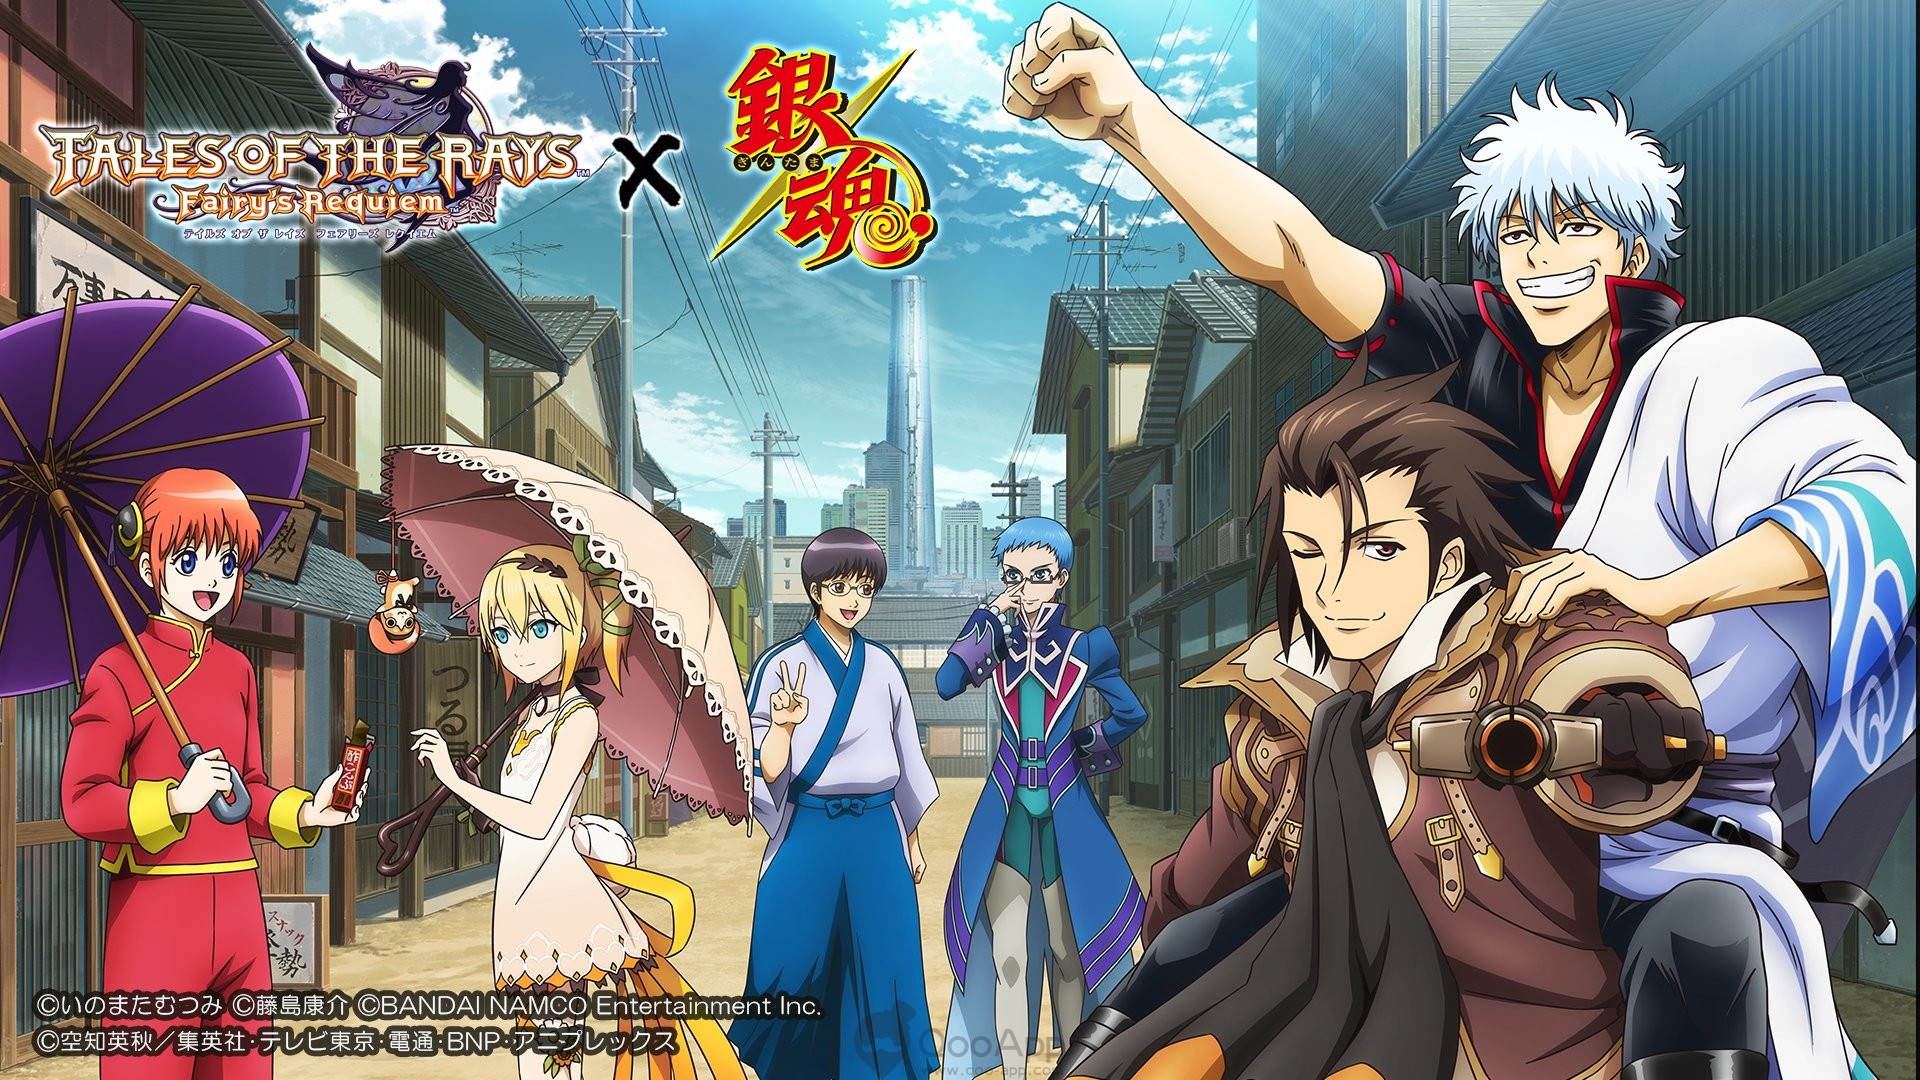 Tales of the Rays X Gintama Collaboration Starts on 13th January